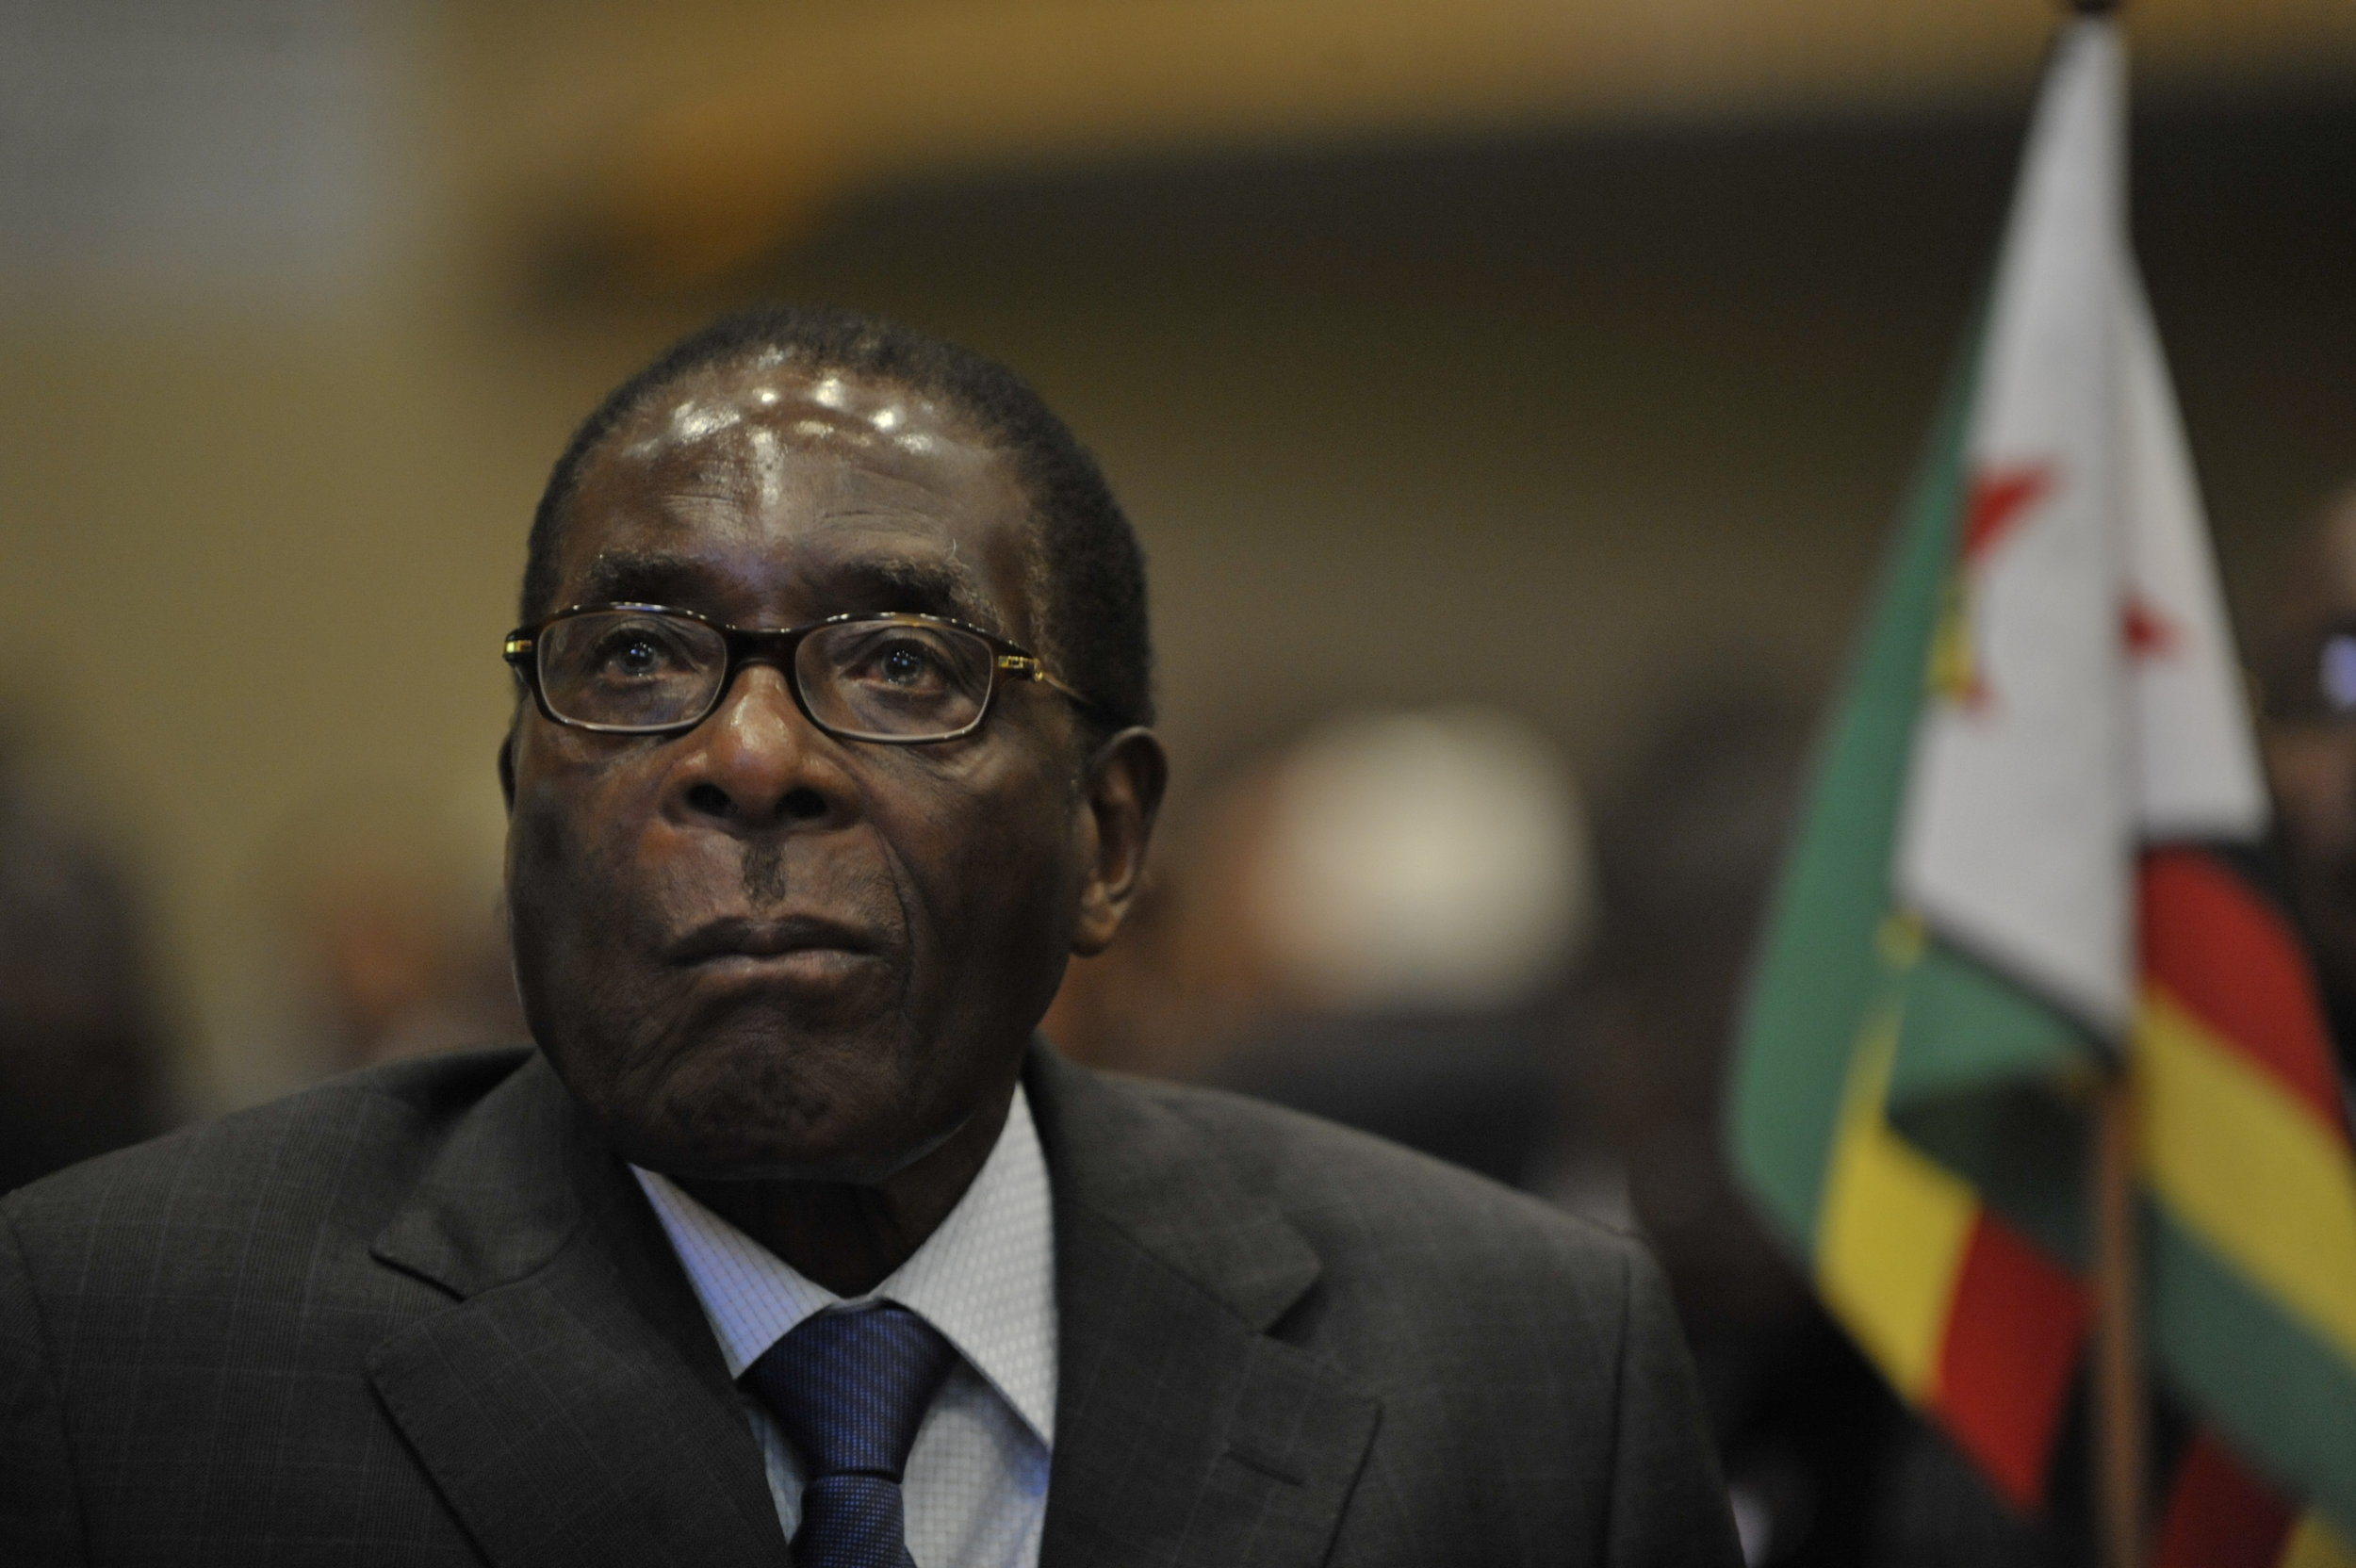 The late Robert Mugabe during the 12th African Union Summit in 2009. | Credit:  Jesse B. Awalt